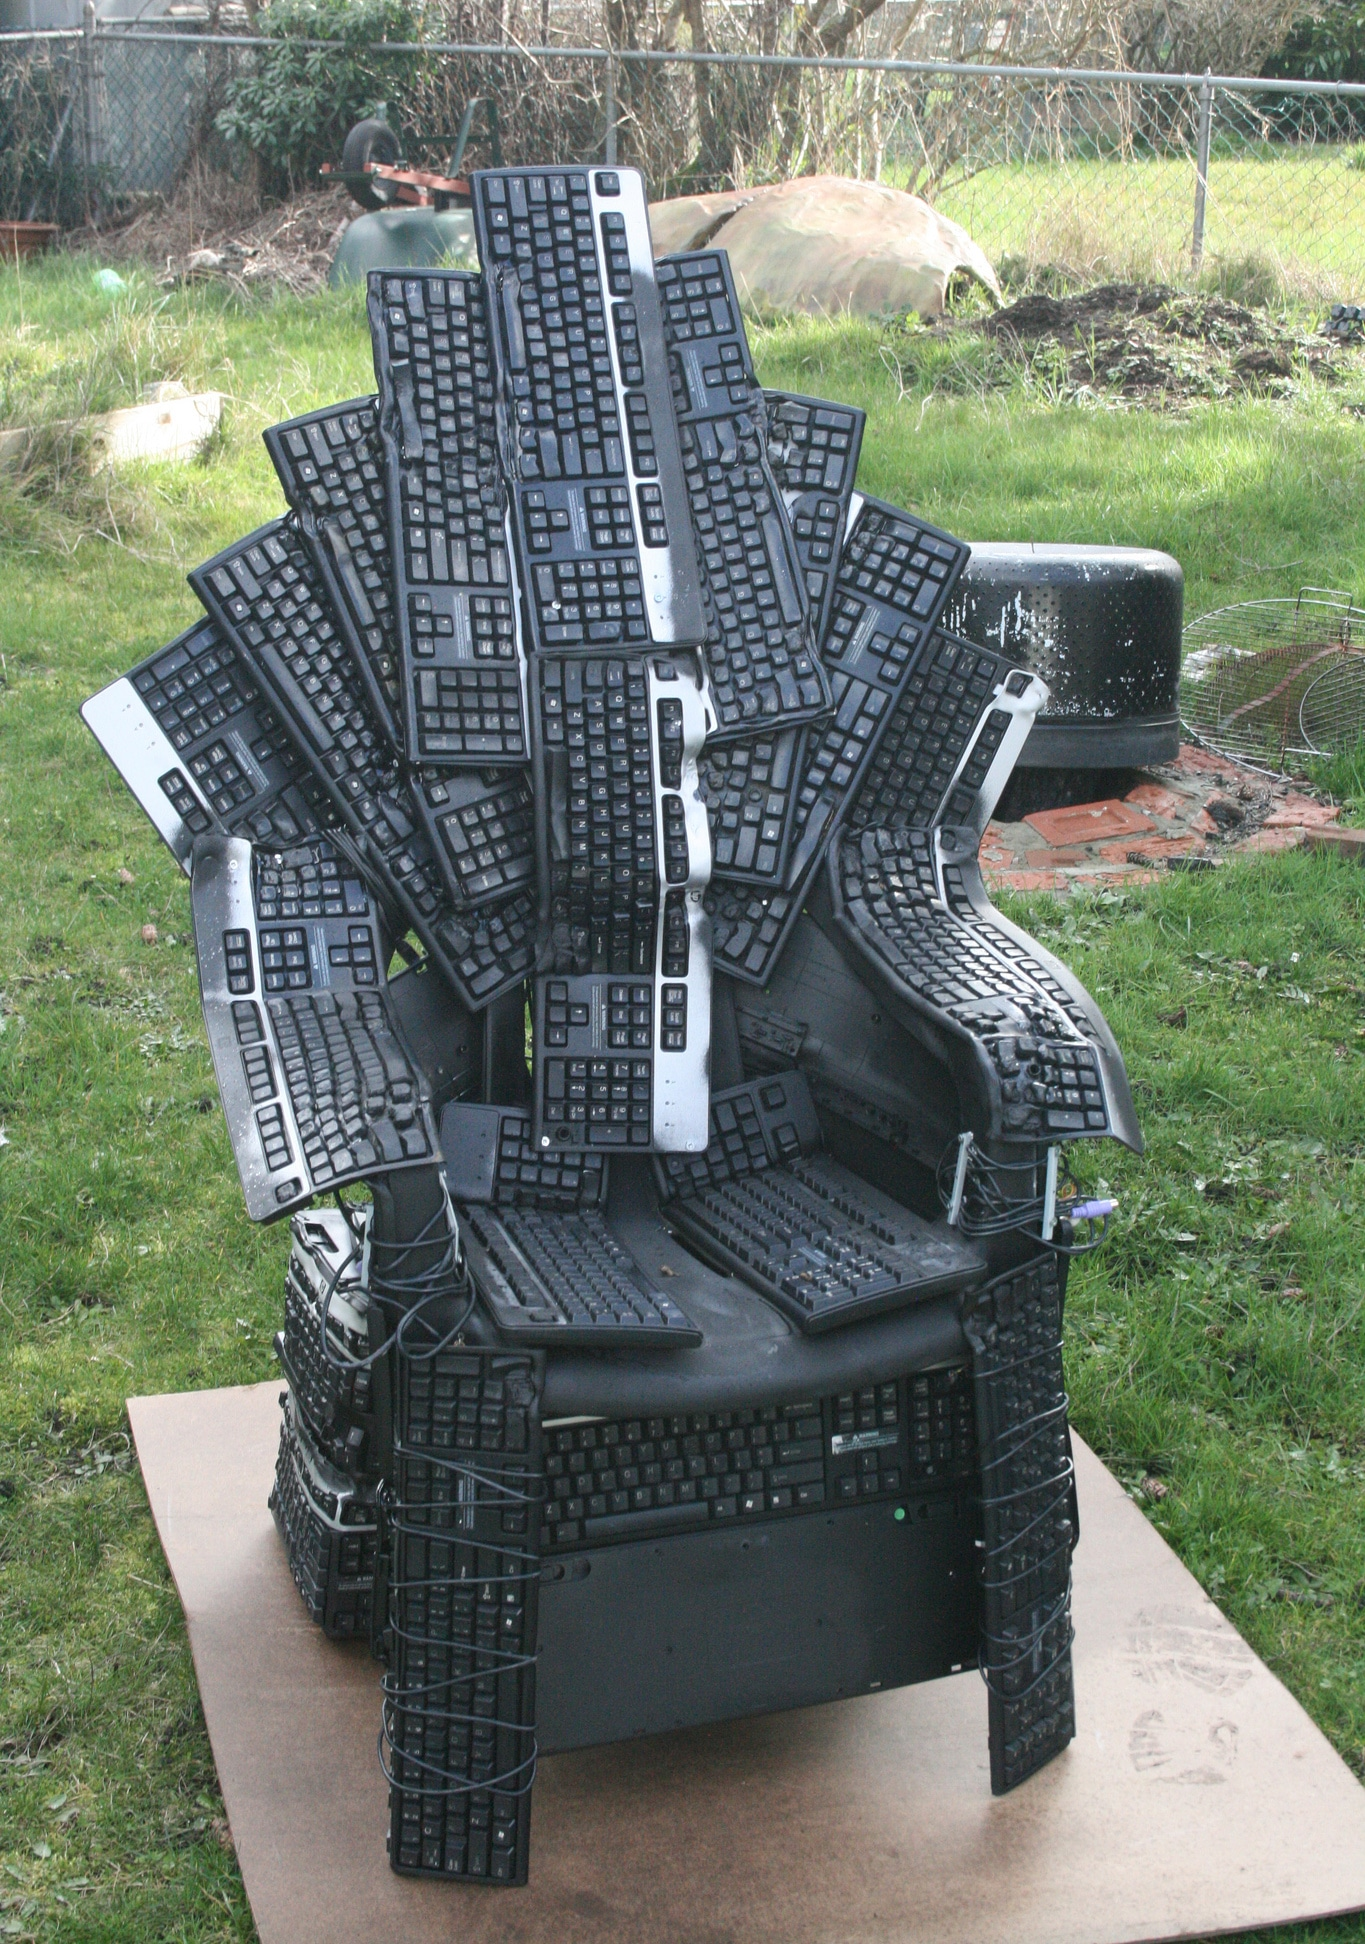 Gamer Chairs Throne Of Nerds Game Of Thrones Tribute Made From